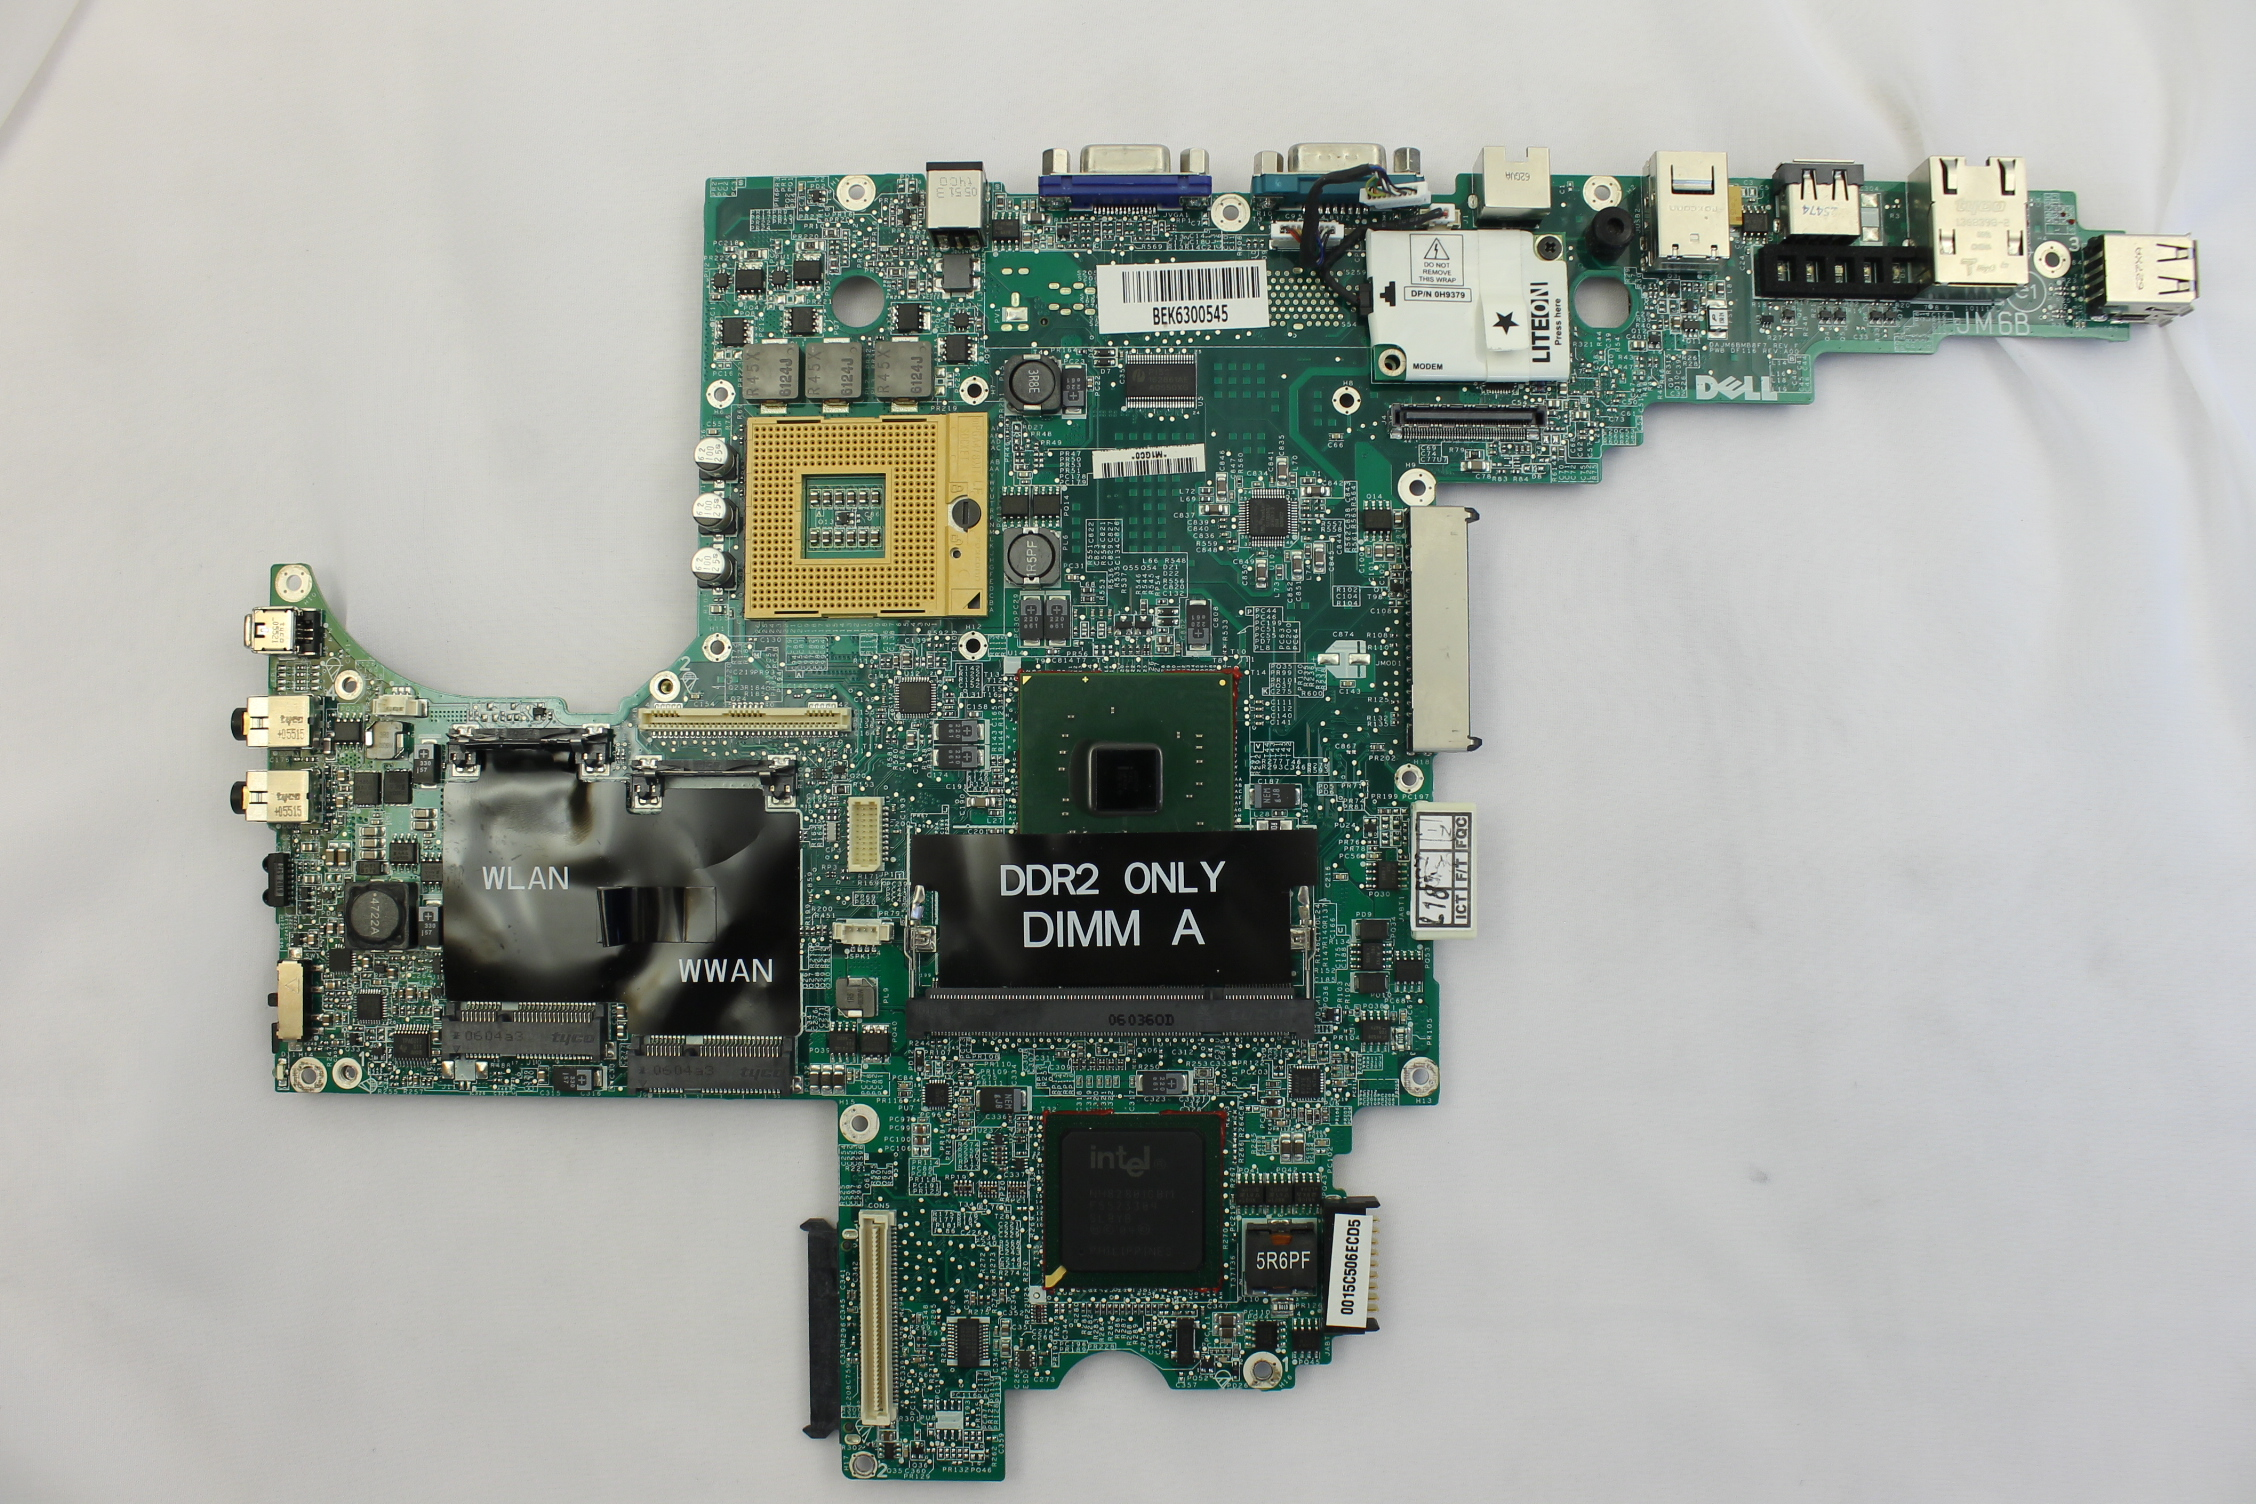 Dell Latitude D820 Motherboard Diagram Wiring Diagrams D630 Laptop Block Upper Edge Technology D830